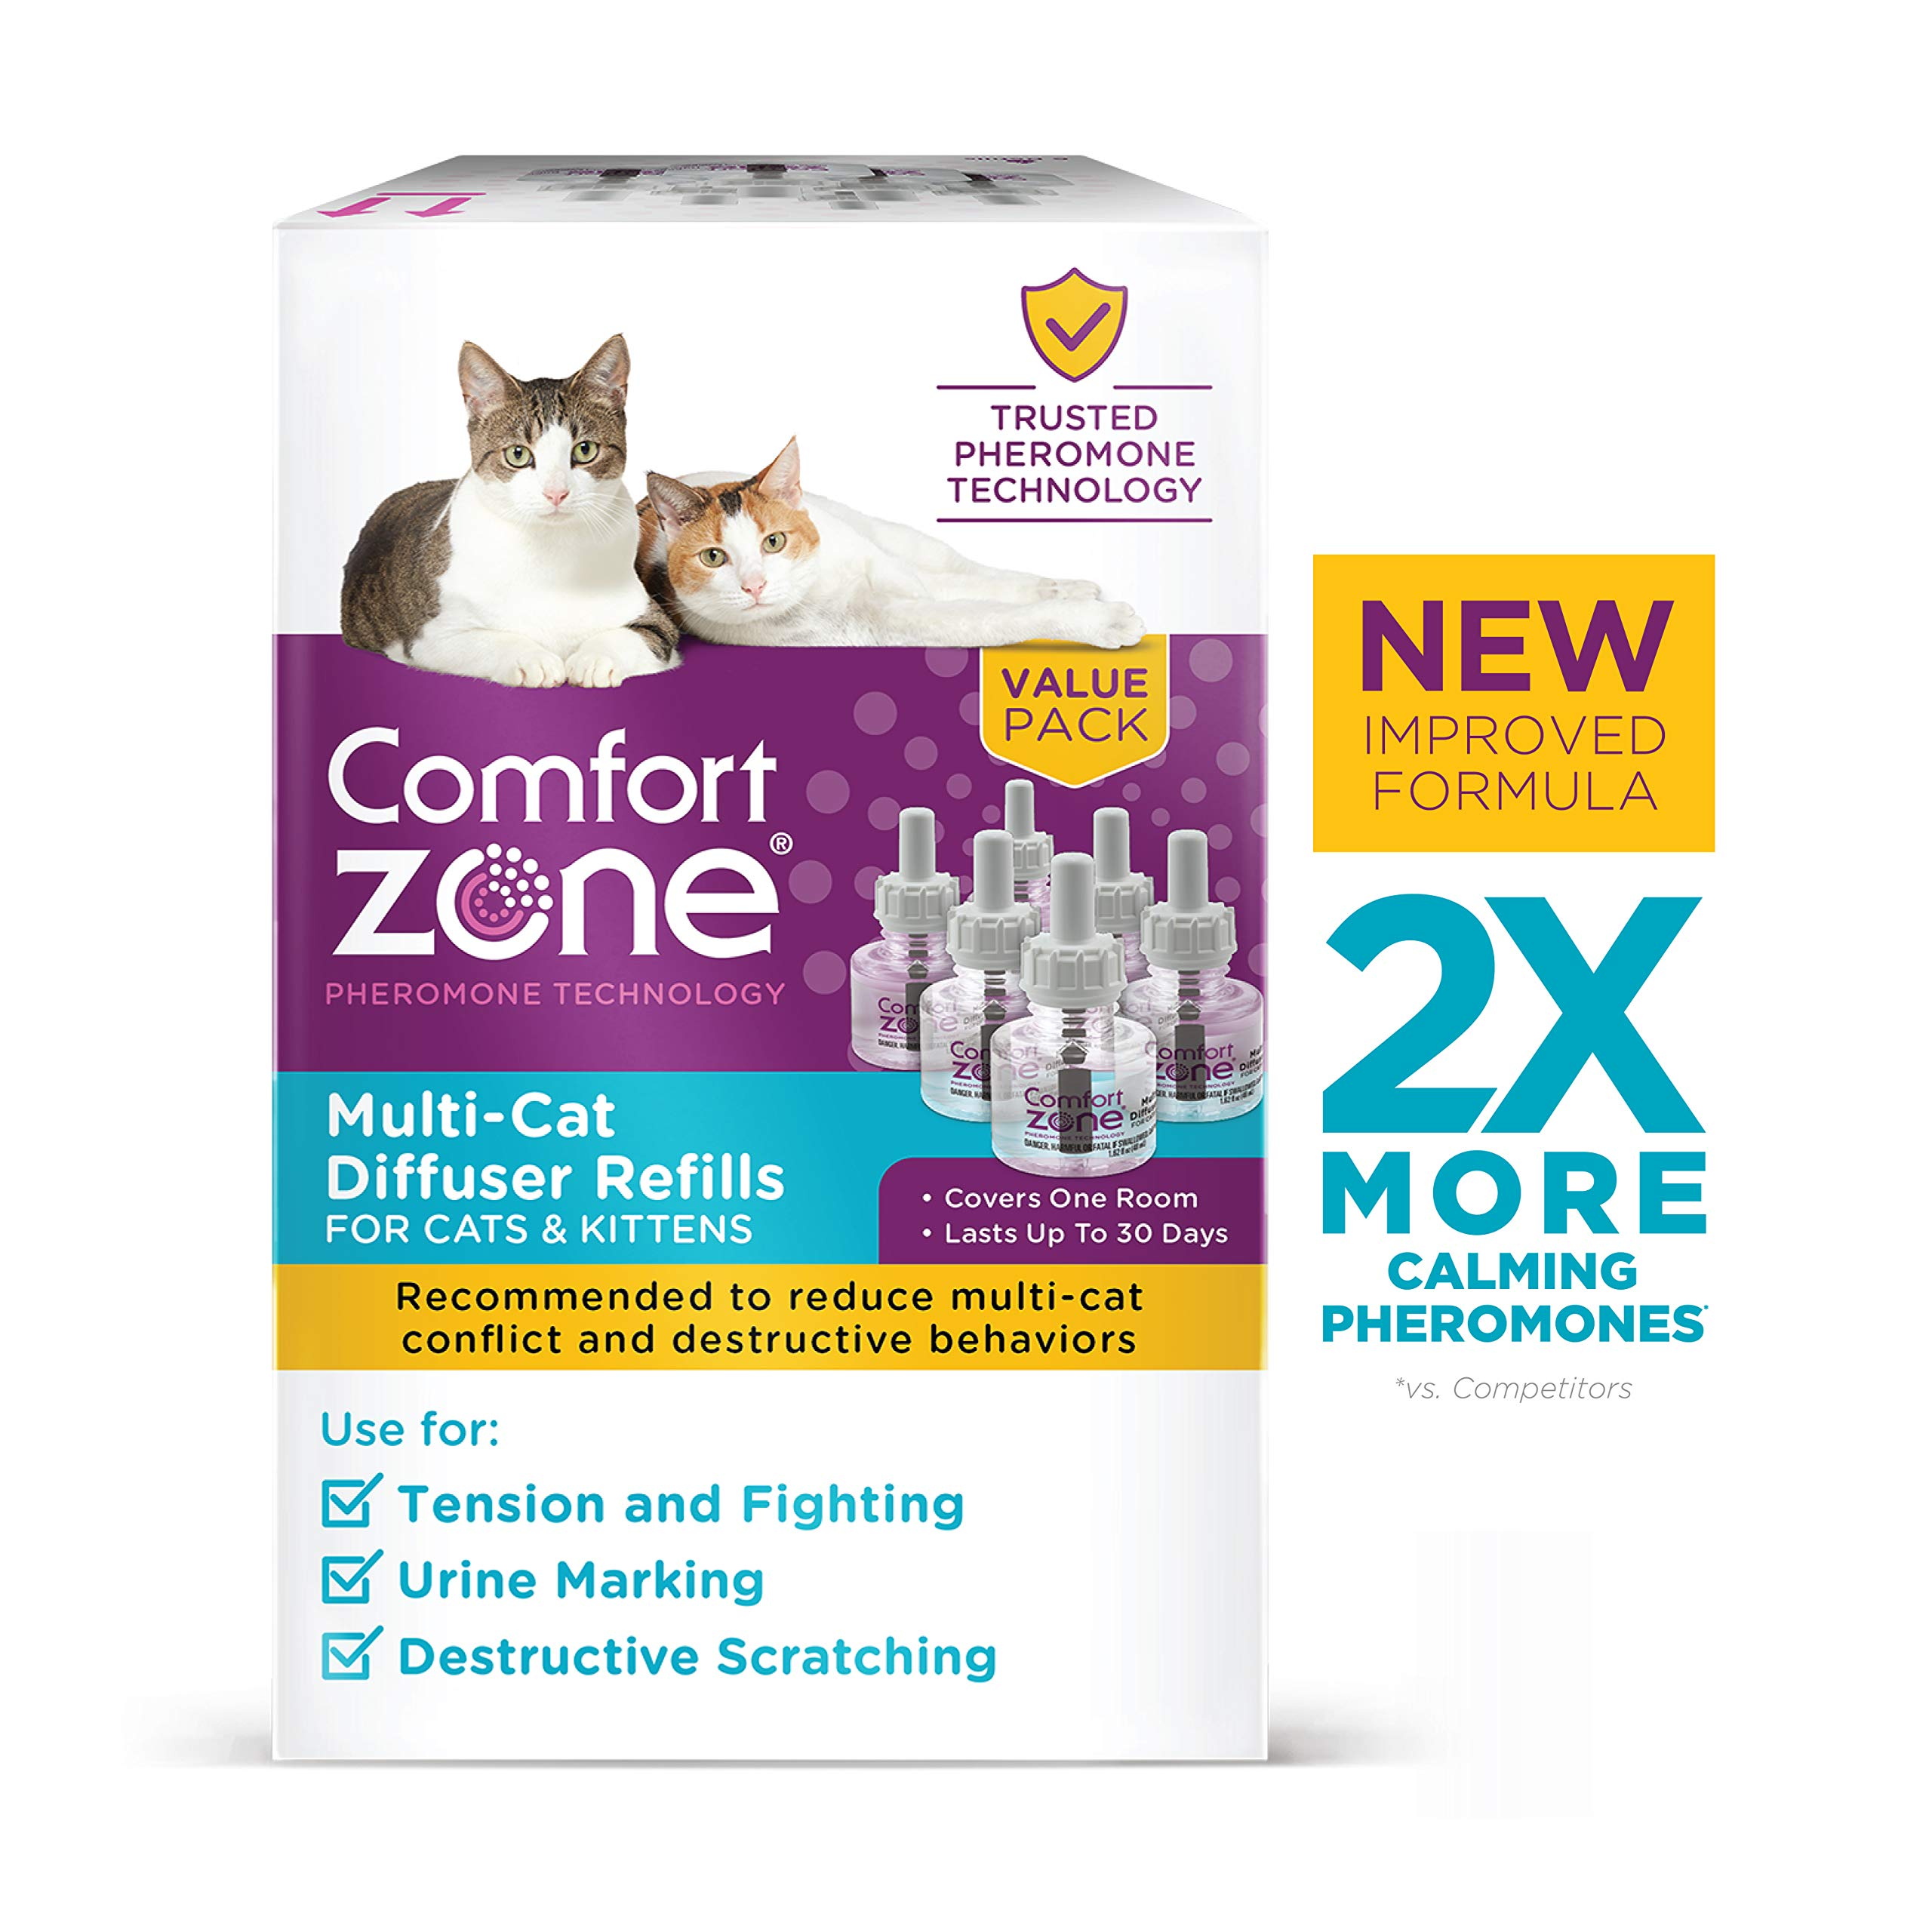 Comfort Zone MultiCat Calming Diffuser Refill Only, New 2X Pheromones for Cats Formula, 6 Pack by Comfort Zone (Image #1)